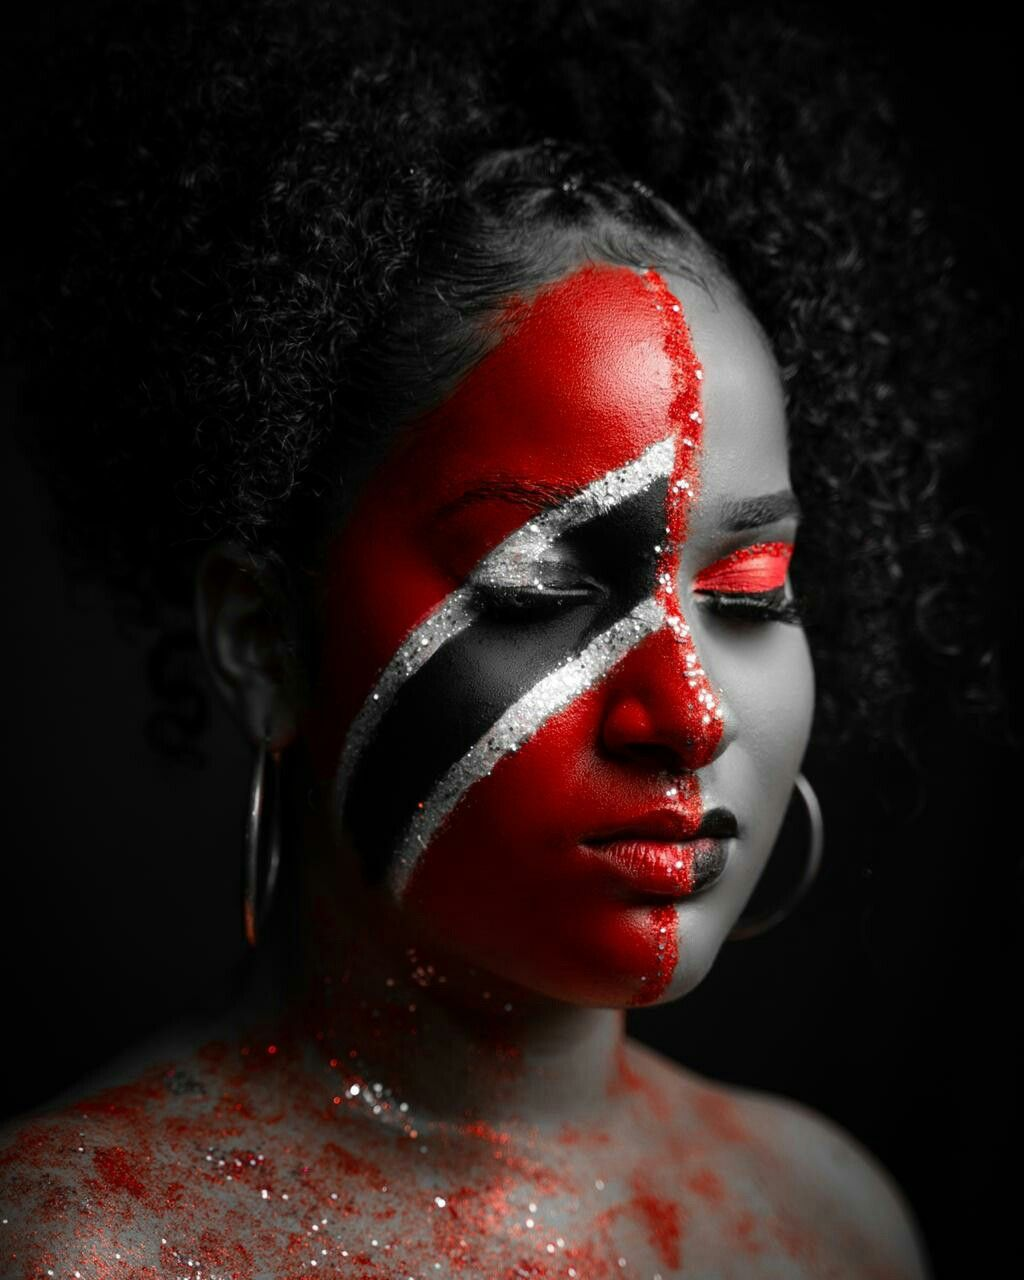 _finesse_it_hnm in 2020 Halloween face makeup, Good